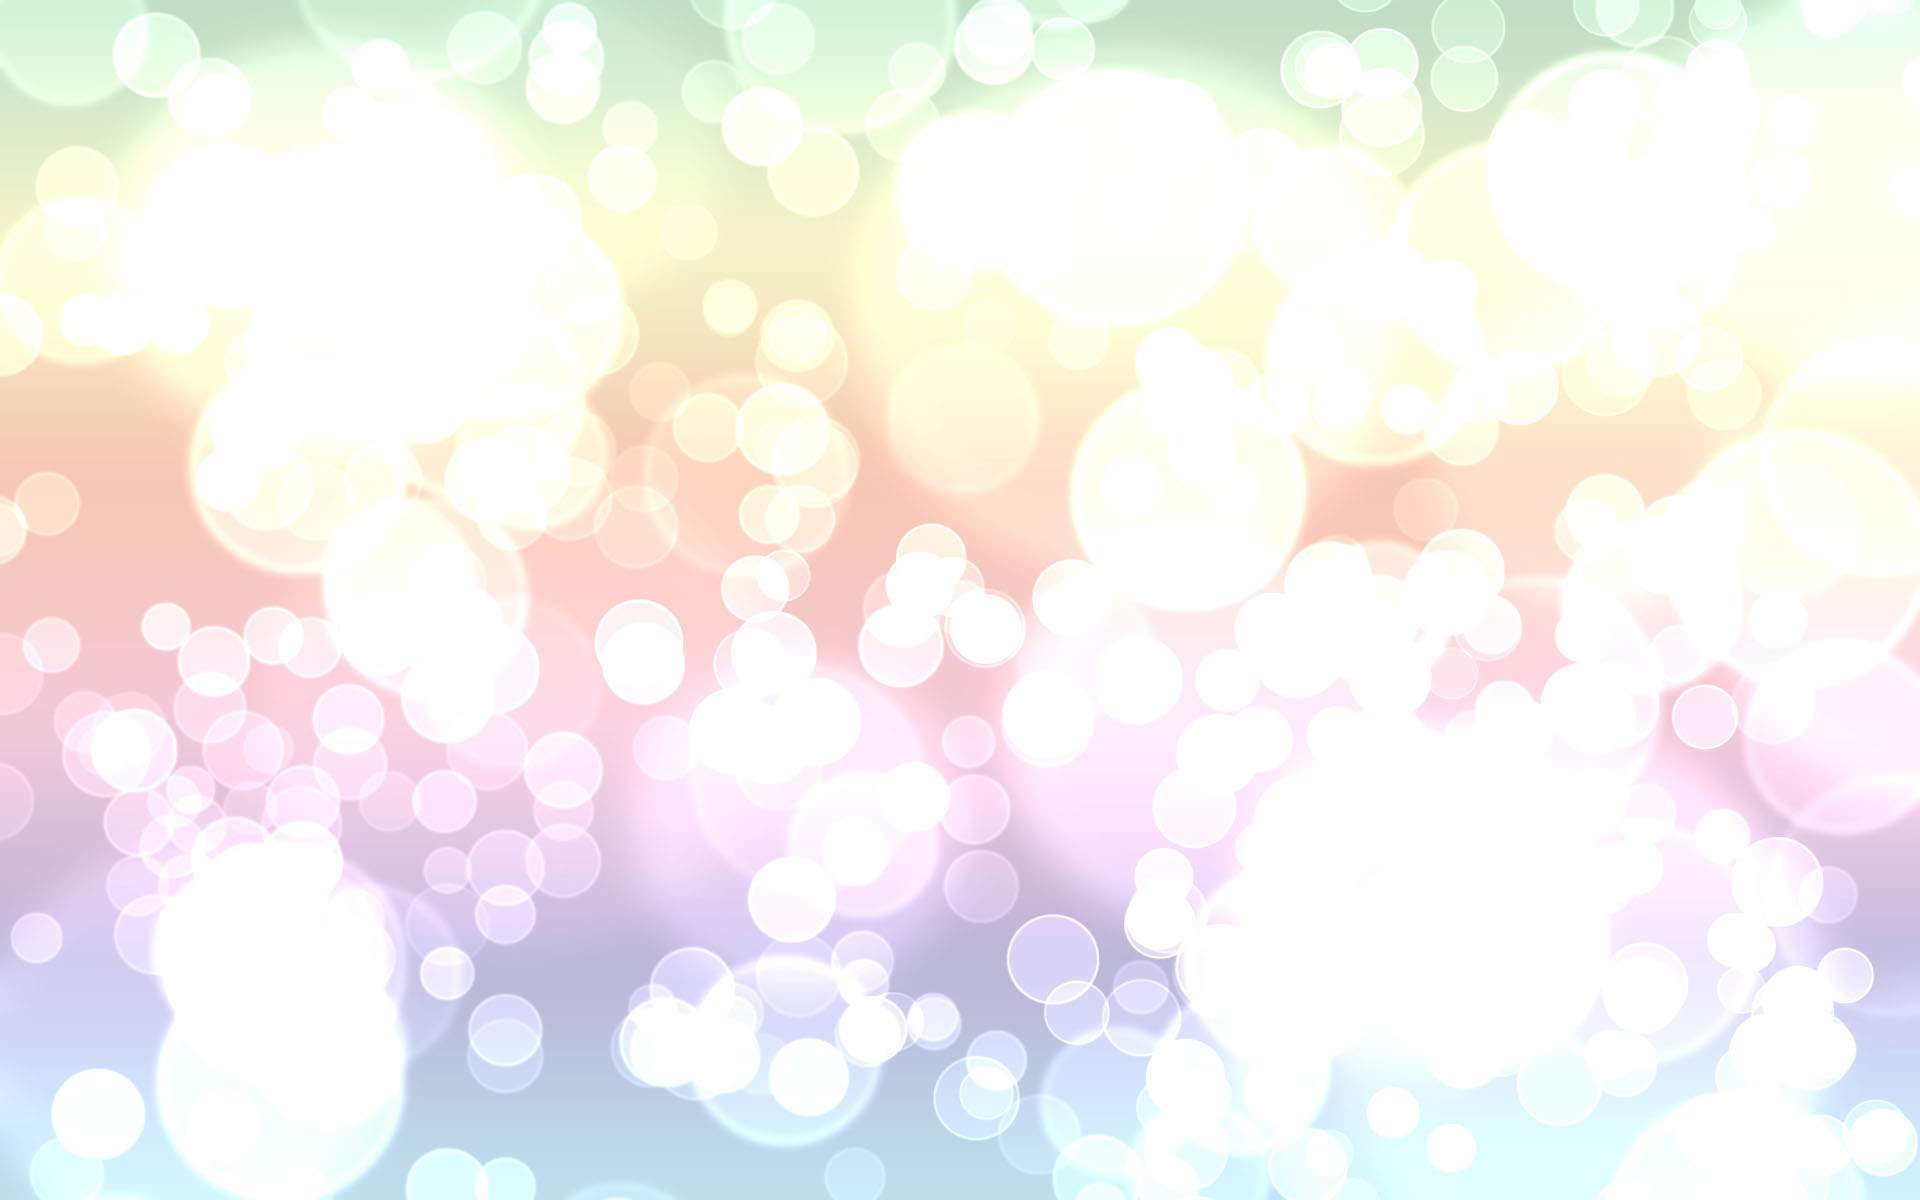 Light Colorful Wallpaper For Mac - Color White Background Hd - HD Wallpaper